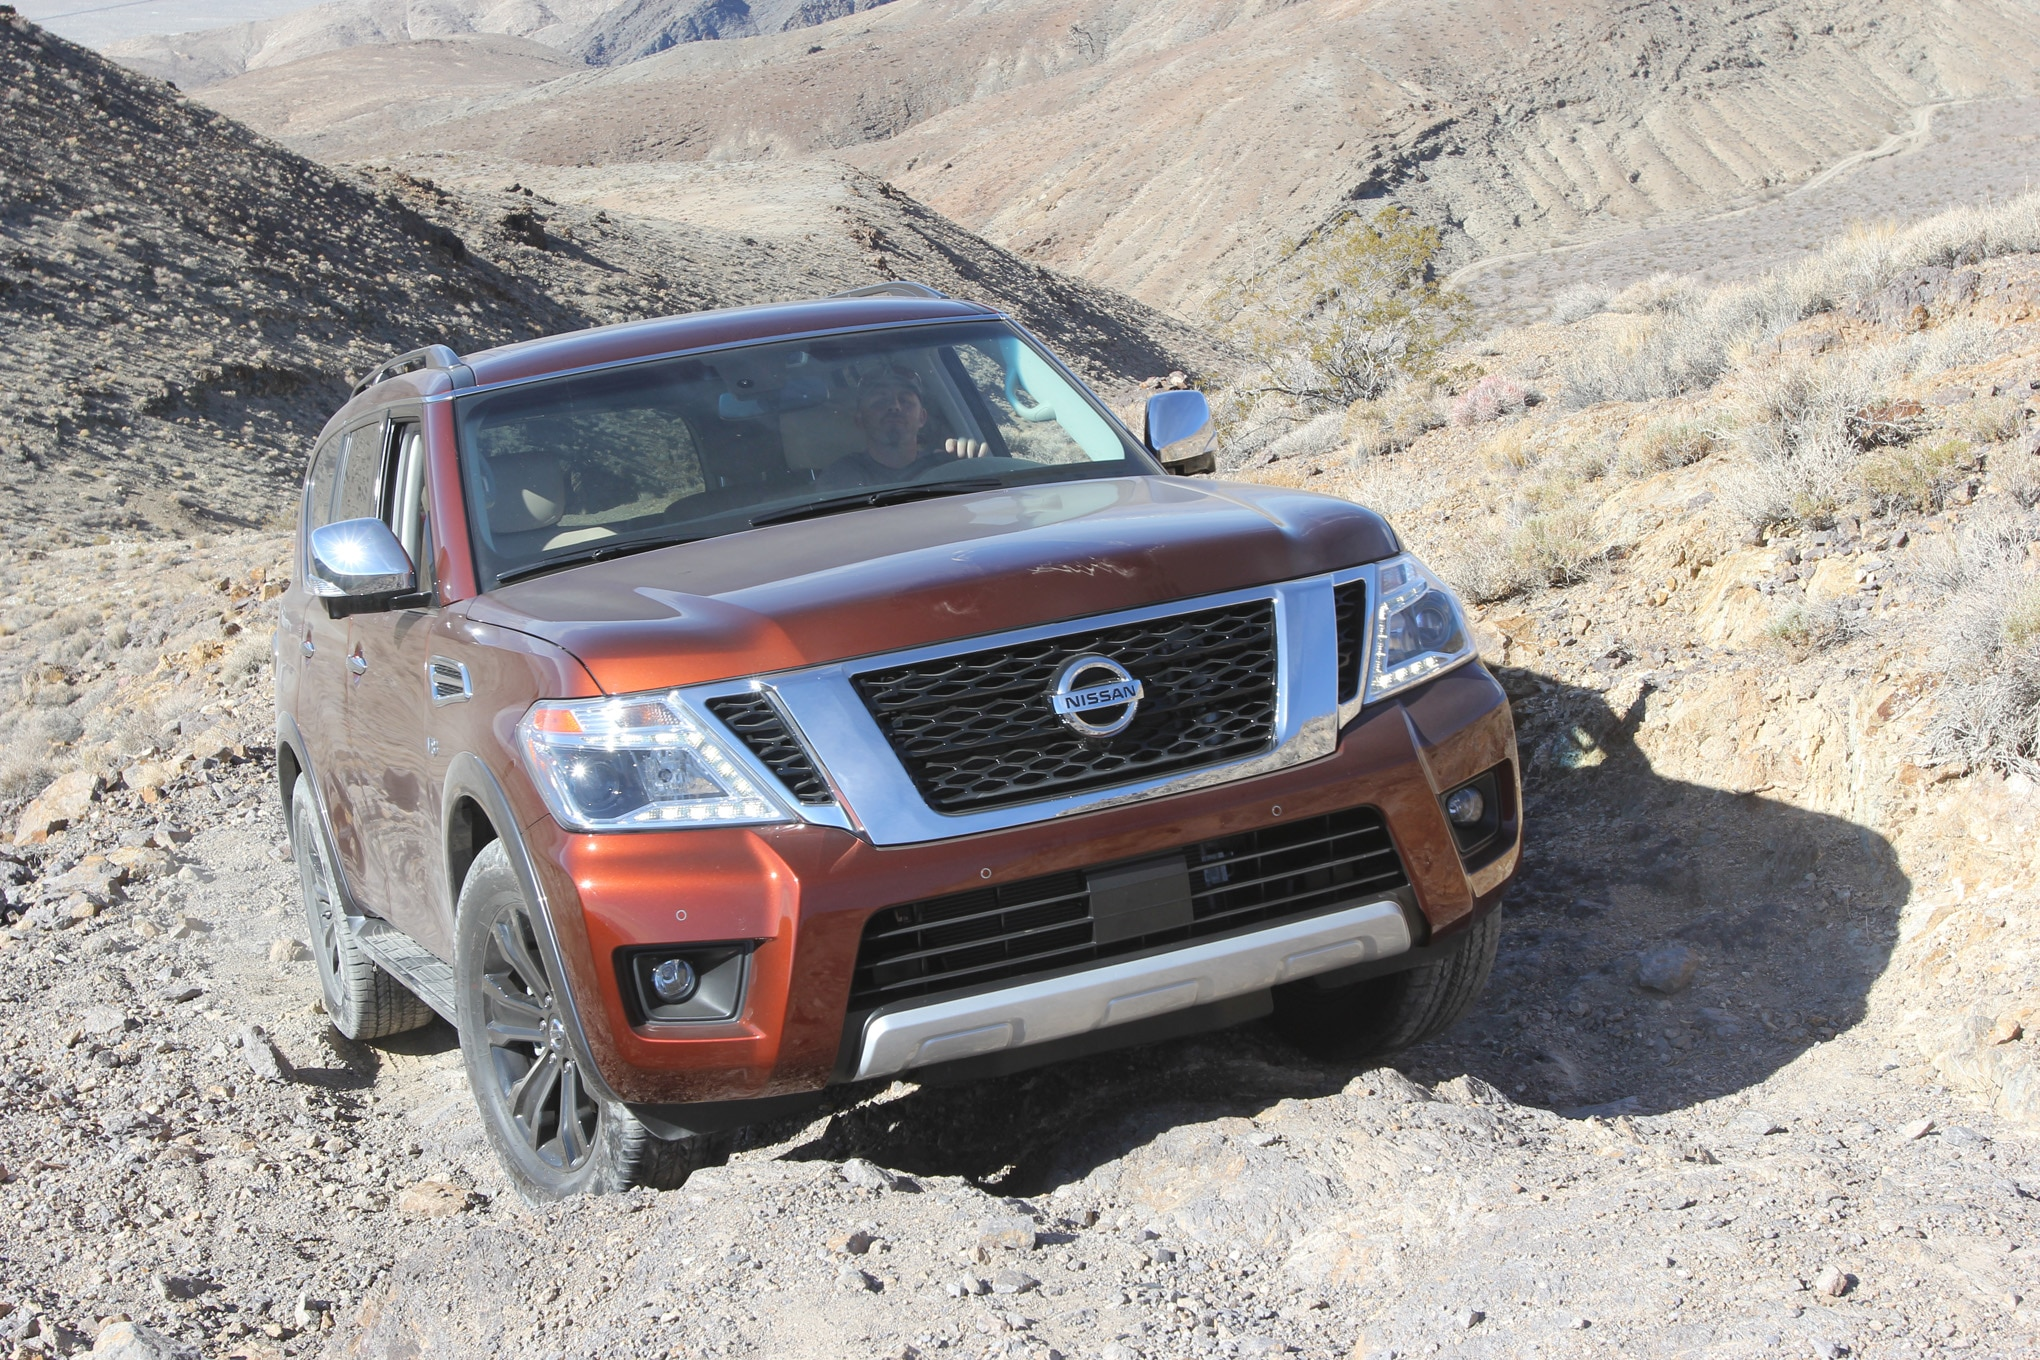 027 suv of the year